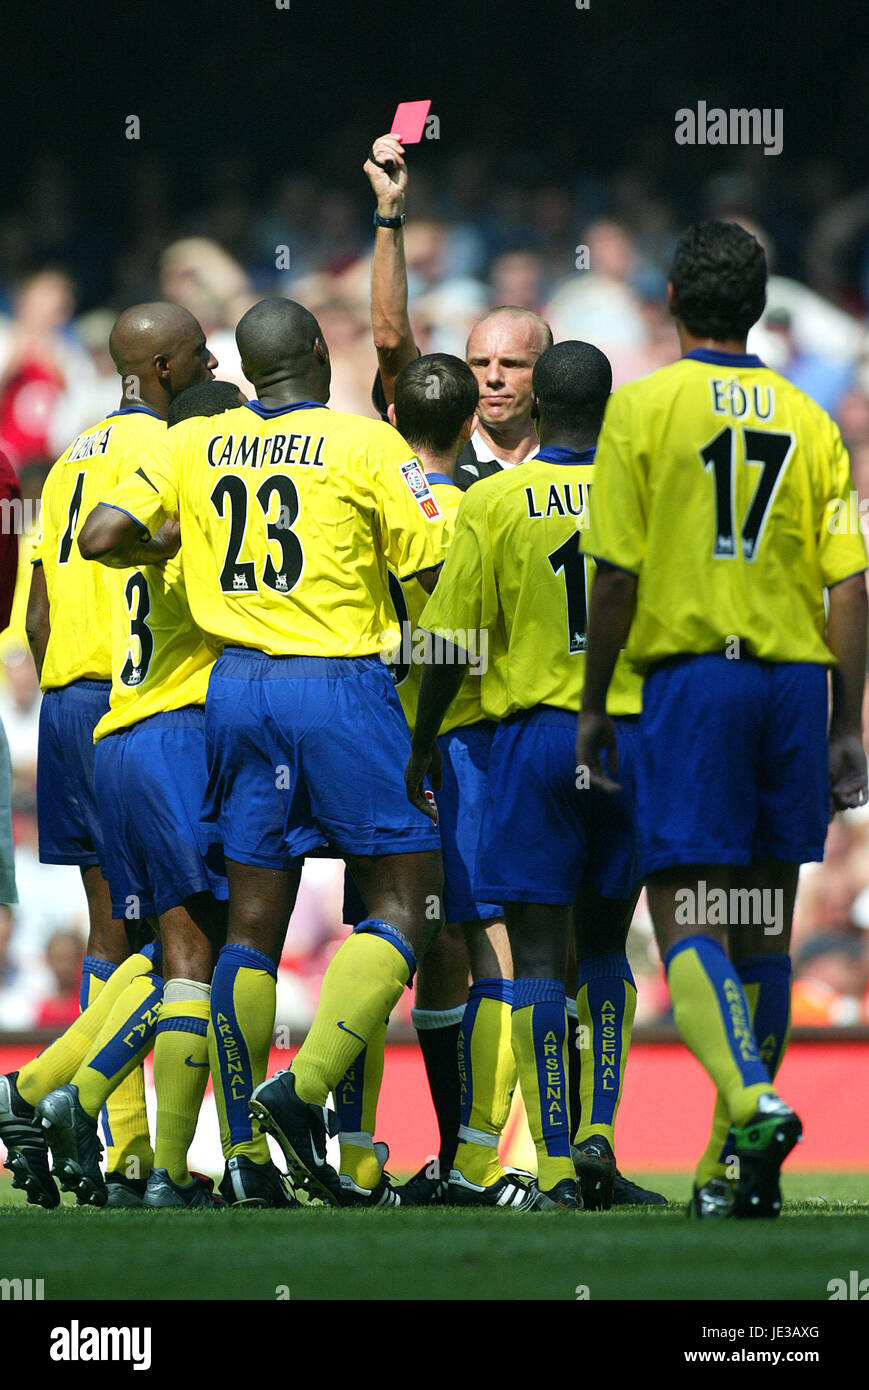 FRANCIS JEFFERS IS SENT OFF ARSENAL V MANCHESTER UNITED MILLENIUM STADIUM CARDIFF WALES 10 August 2003 - Stock Image